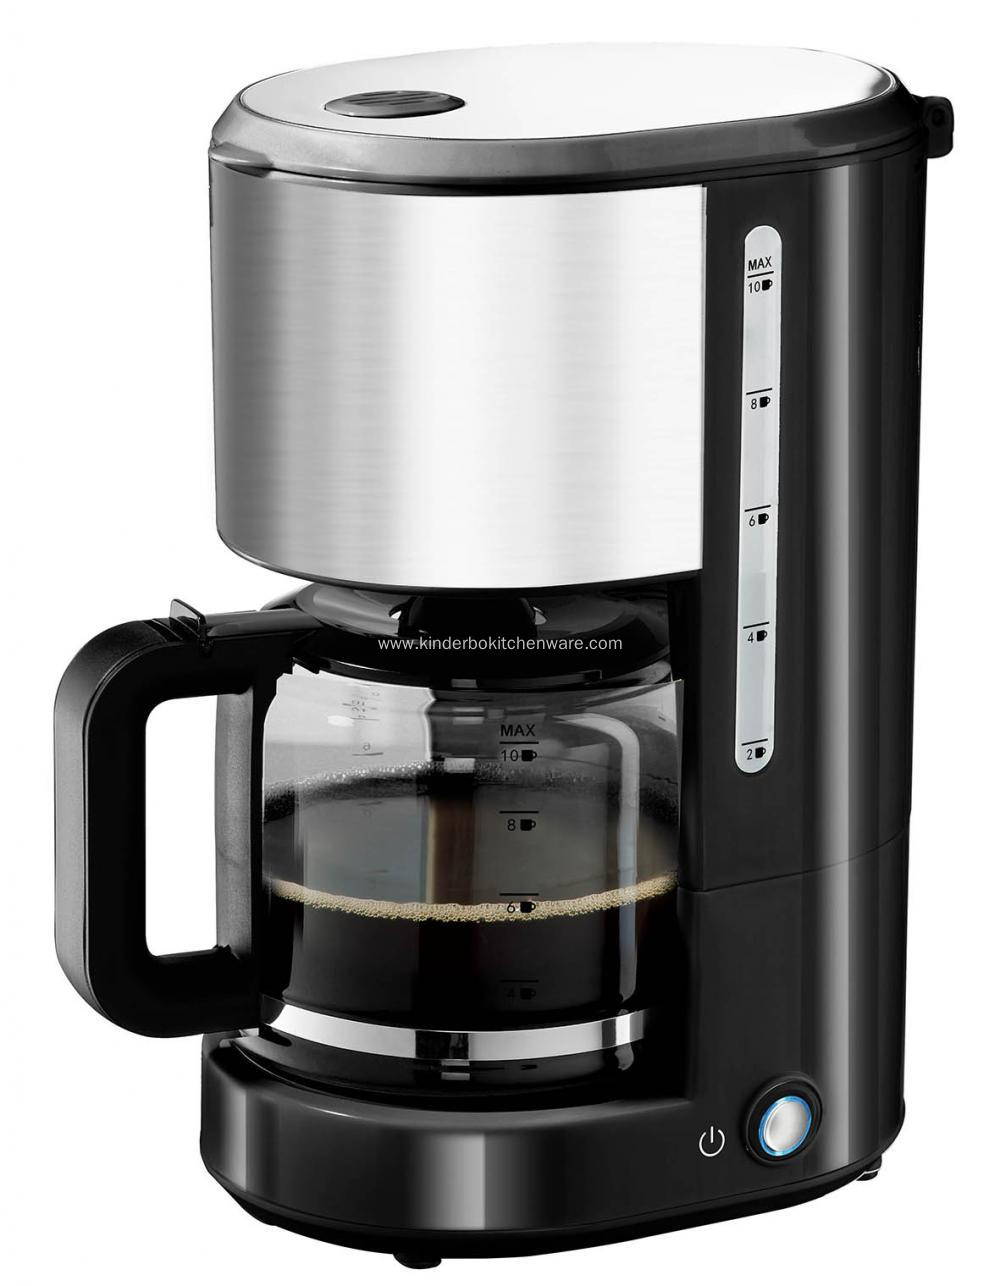 Cappuccino Coffee Maker for Restaurant & Home